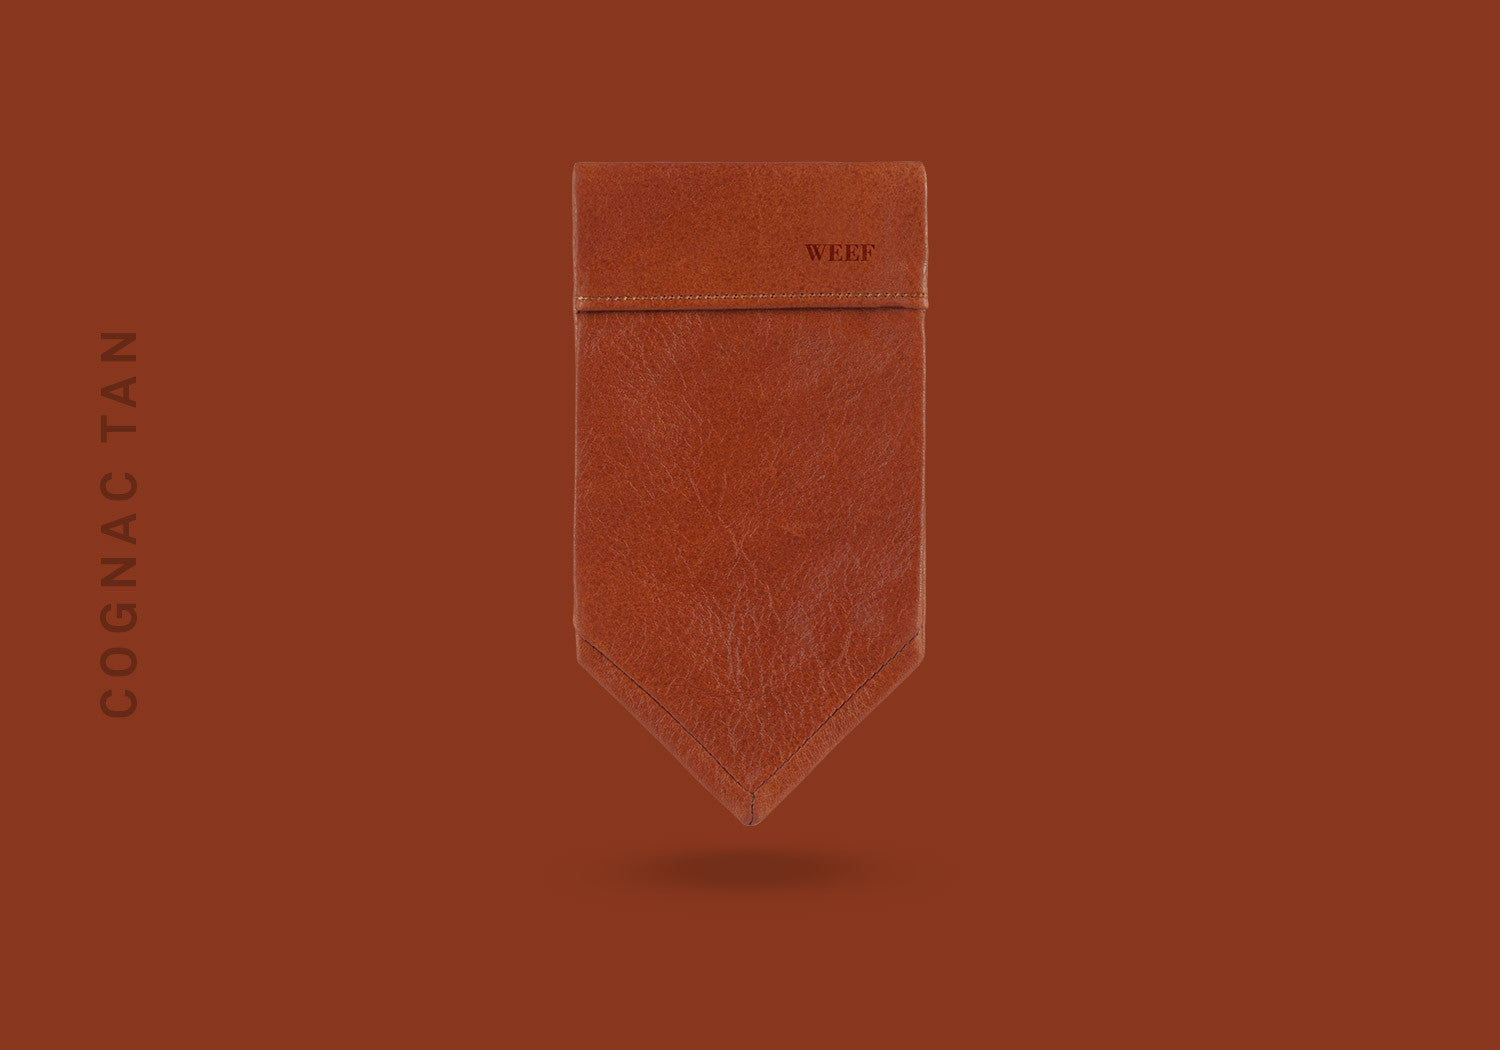 This cognac tan WEEF handmade leather pocket square is a great present or gift idea for dapper and stylish gentlemen for fathers day, valentines day or Christmas.